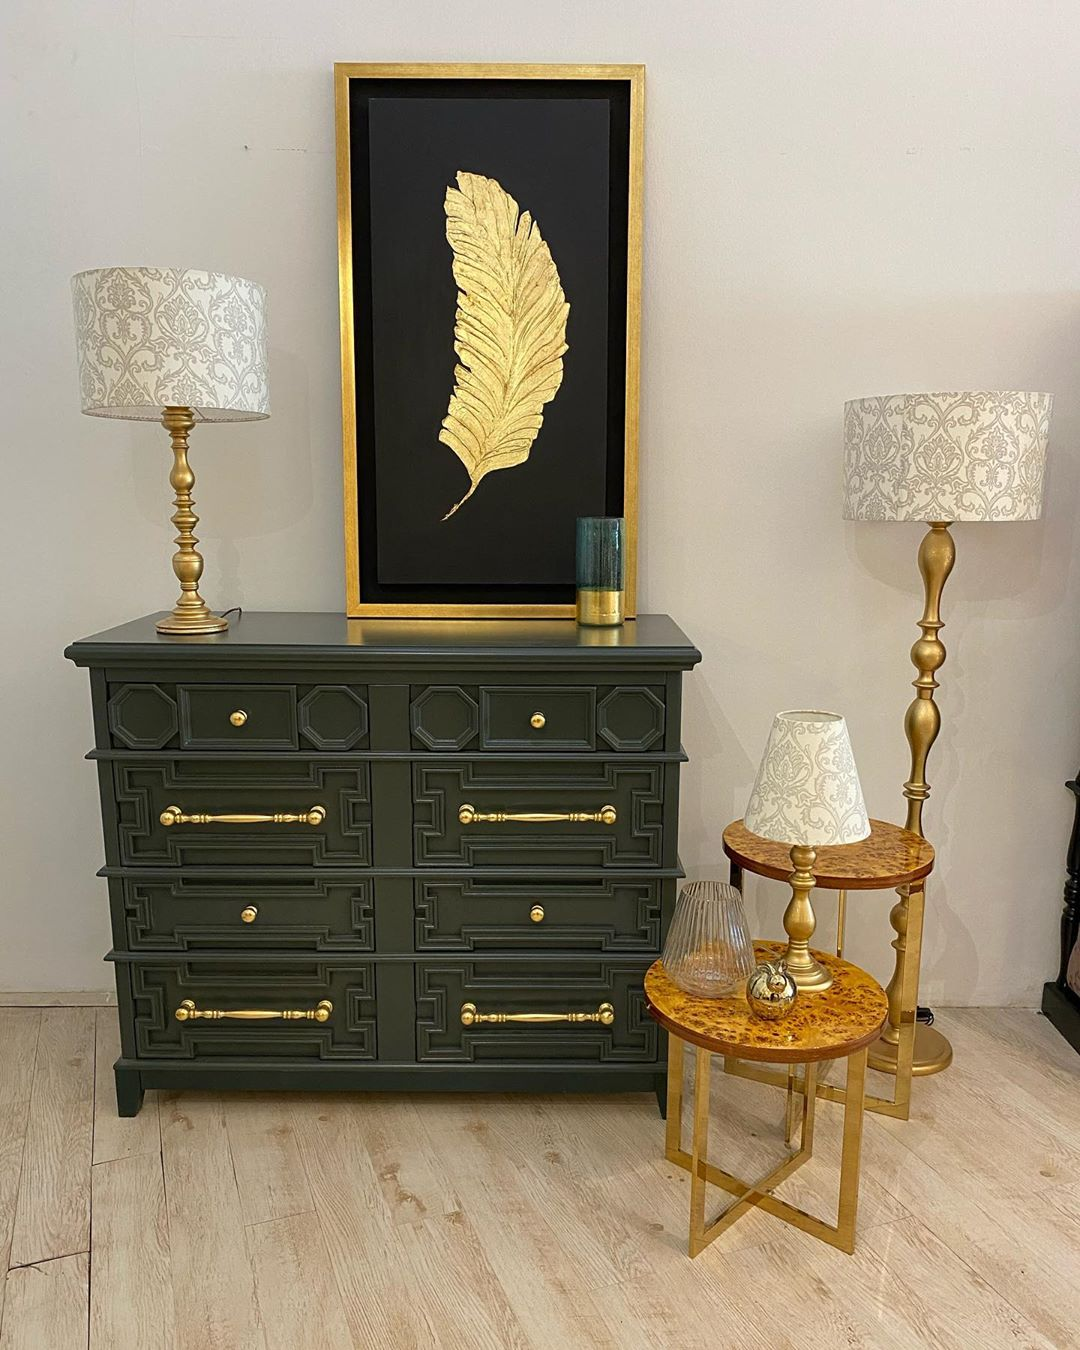 Golden Yellow Home Decorating Ideas 2020 (73)